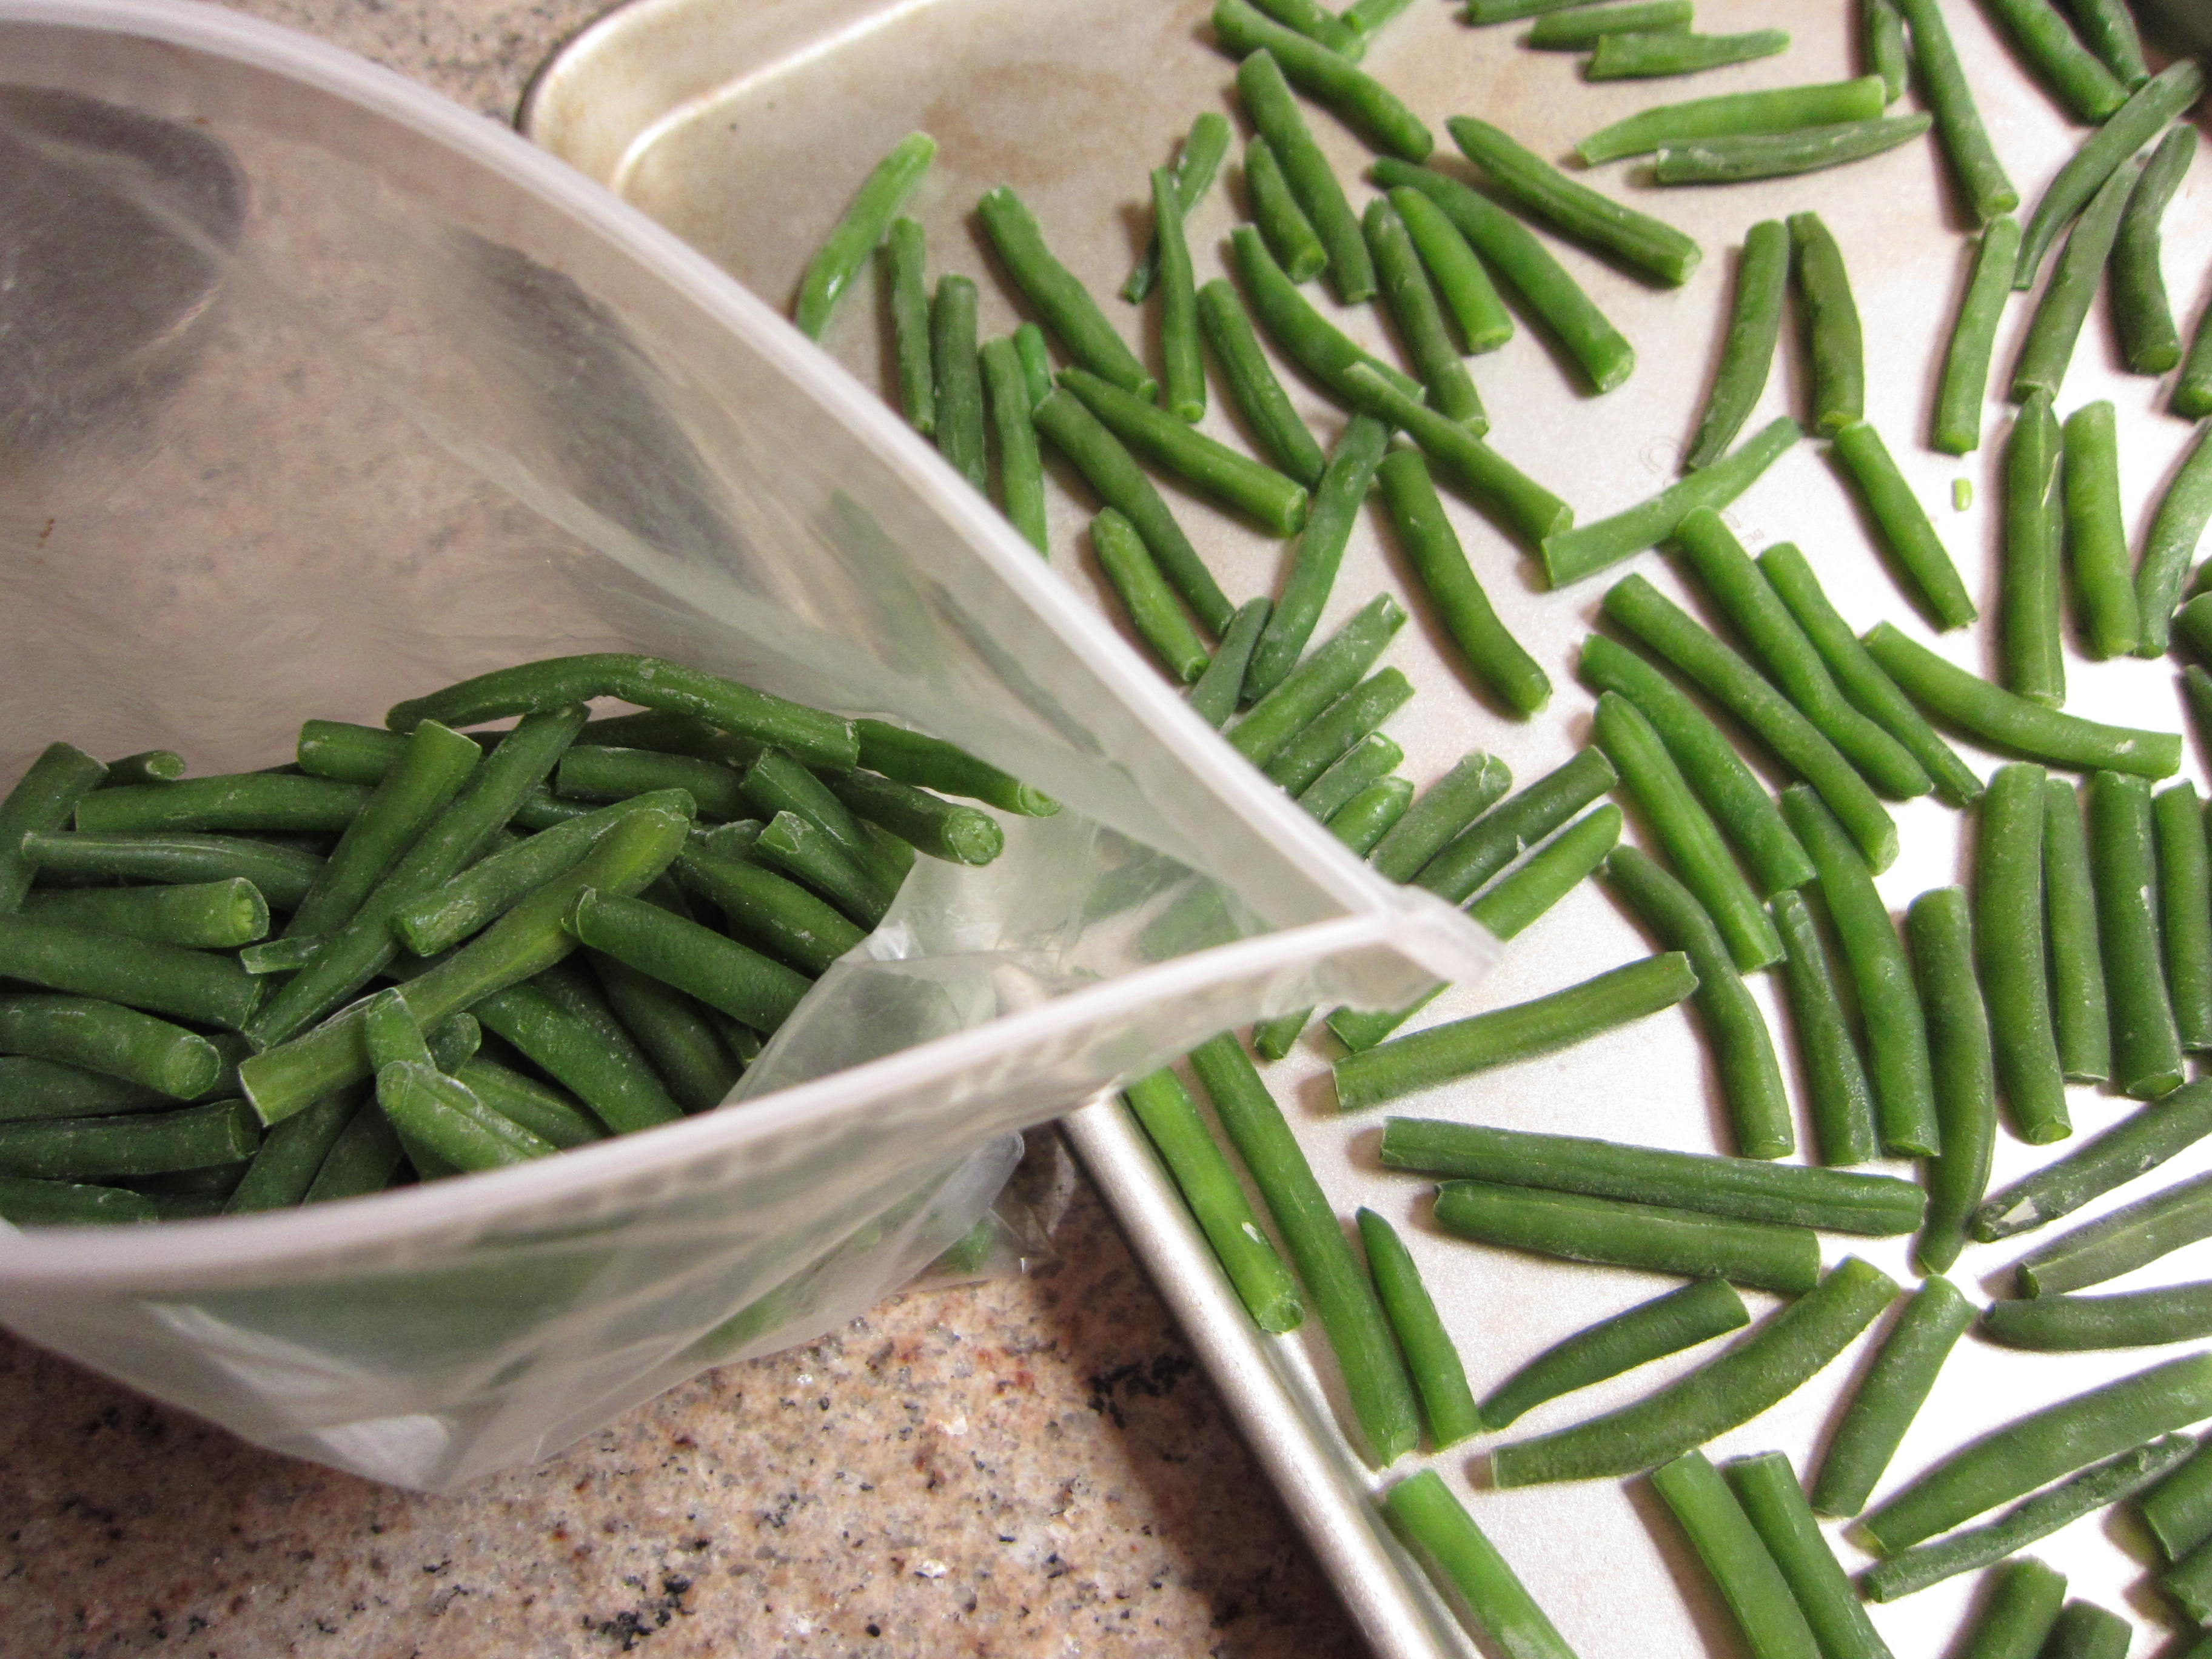 Freeze green beans on a baking sheet first so they won't stick together when bagged for later use.